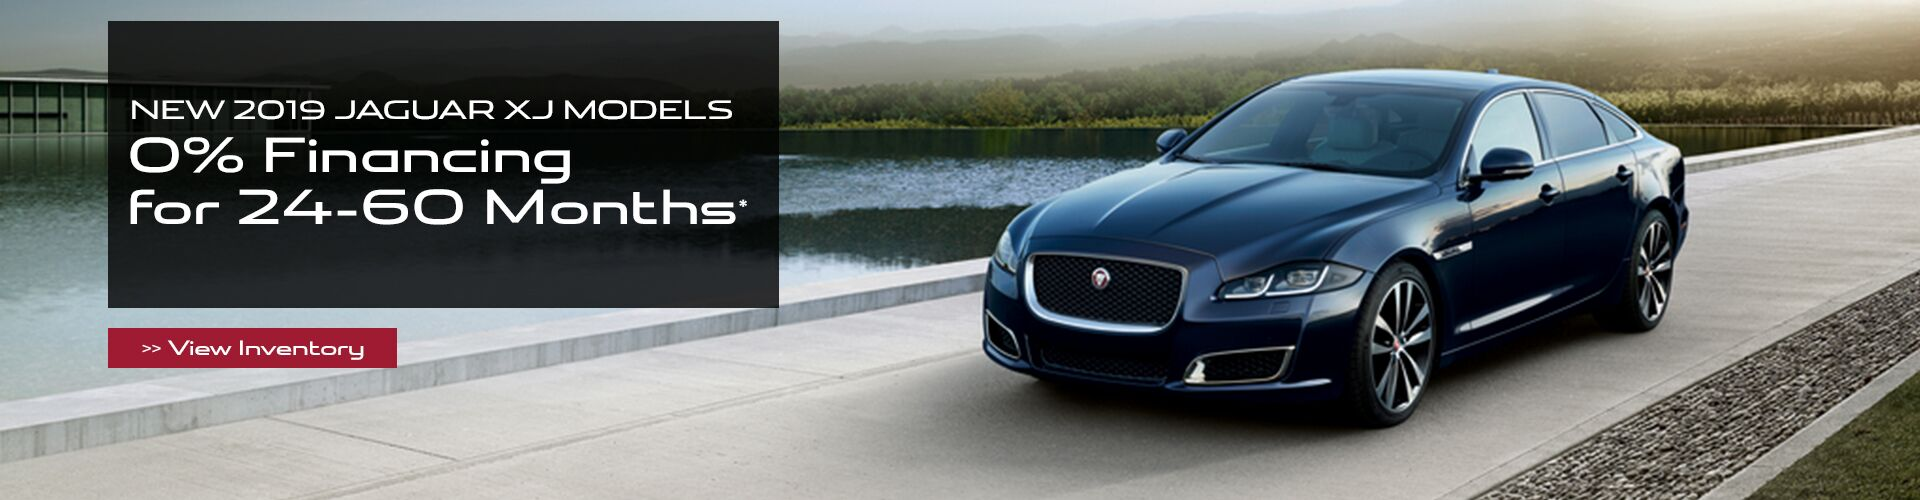 Jaguar San Antonio >> Jaguar Boerne New Pre Owned Jaguar Dealership Boerne